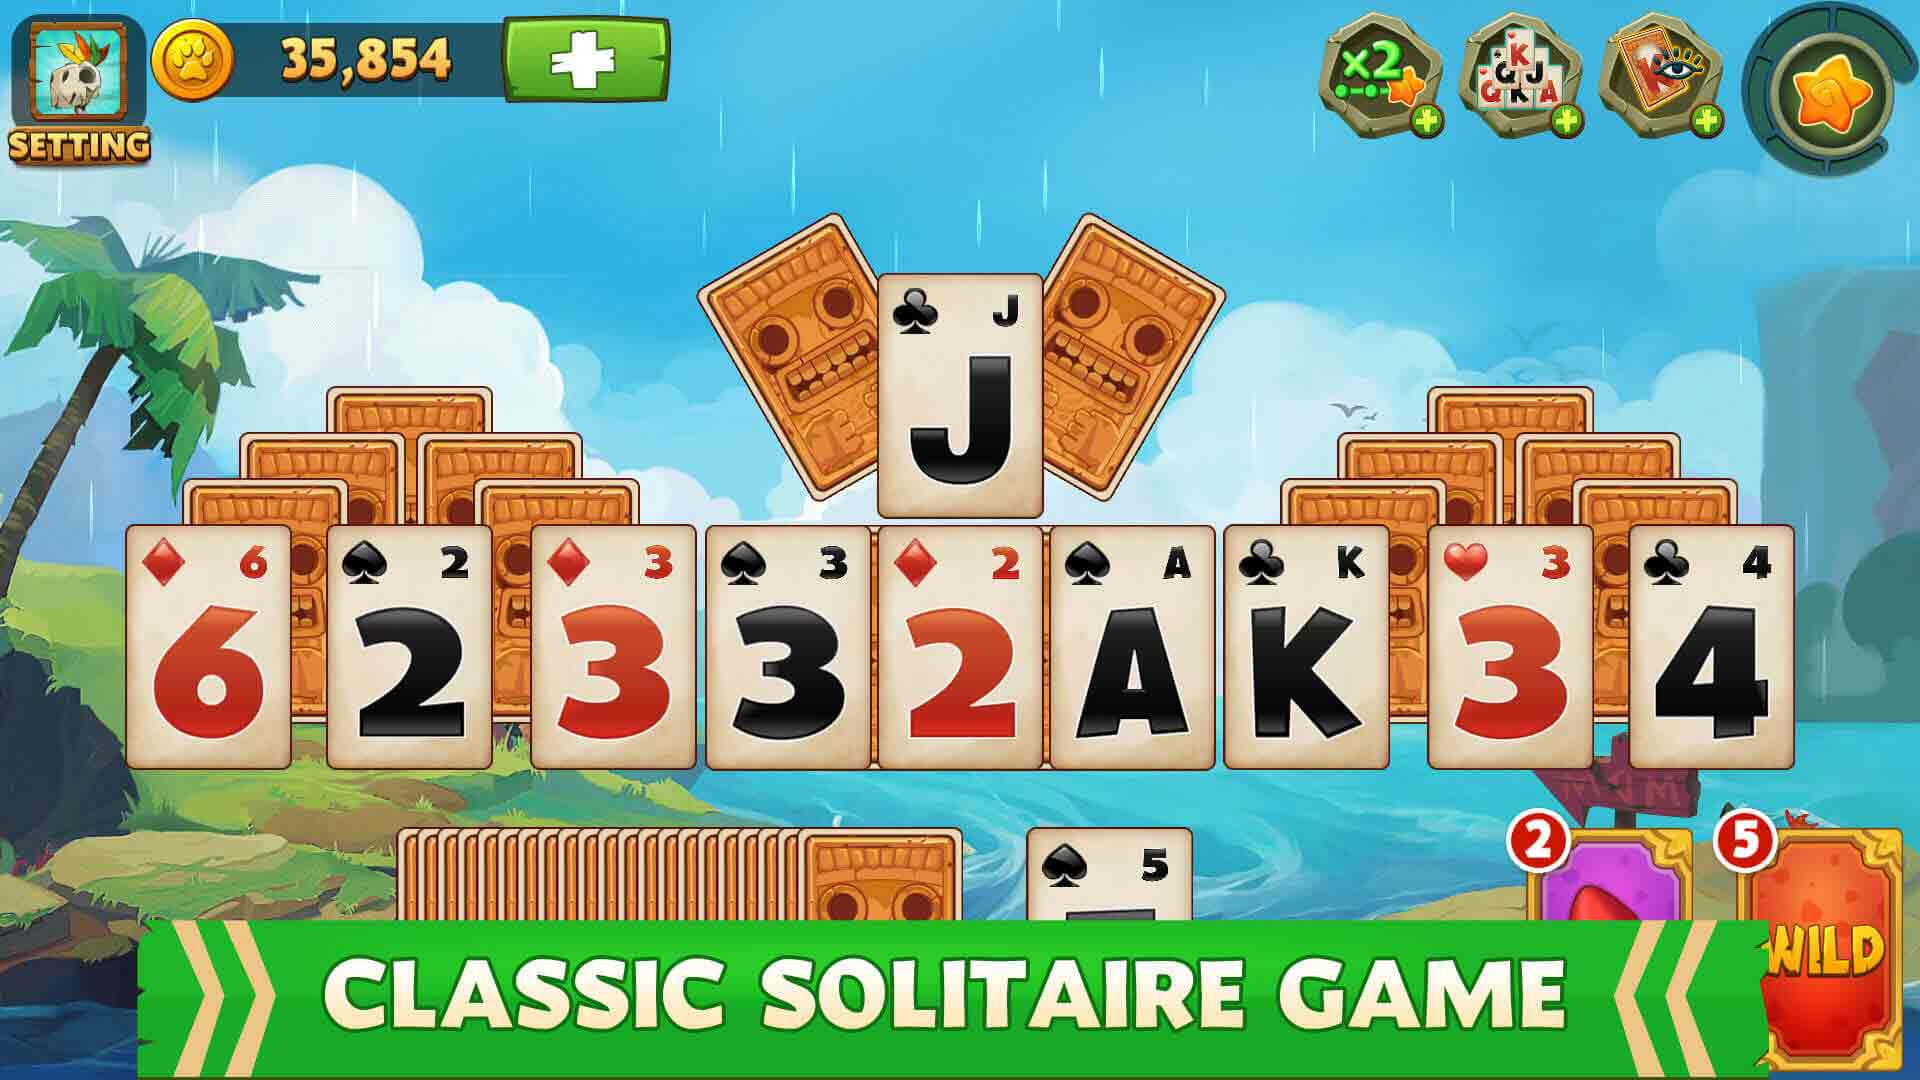 solitaire gameplay features